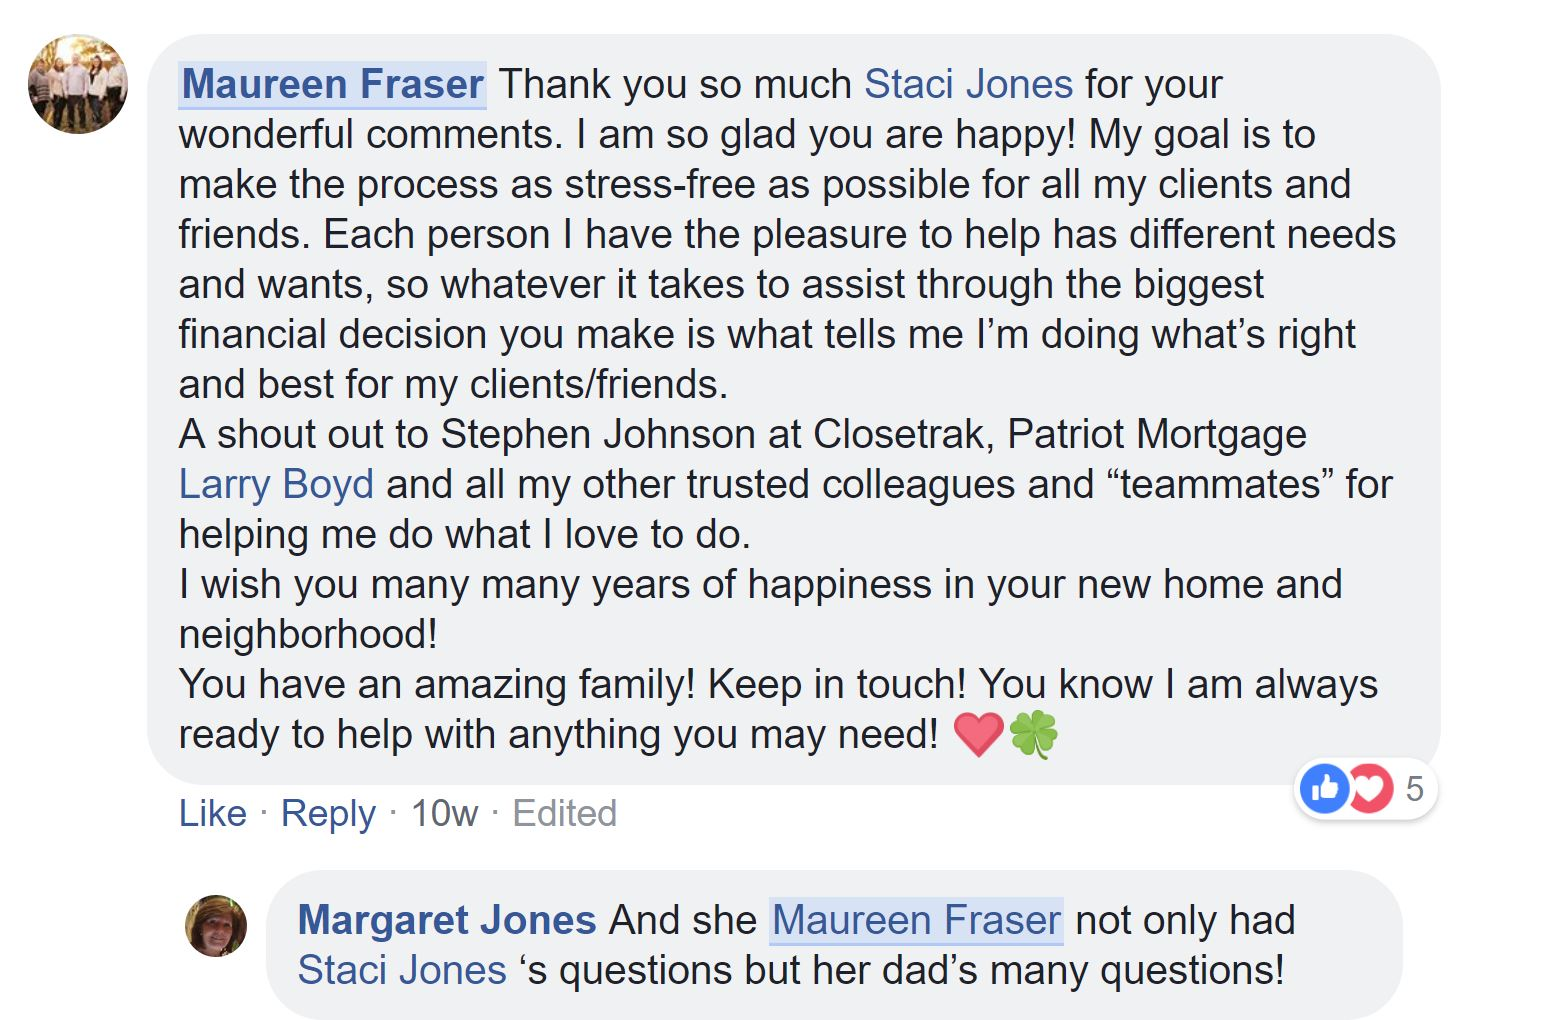 Maureen reply to Staci Jones review